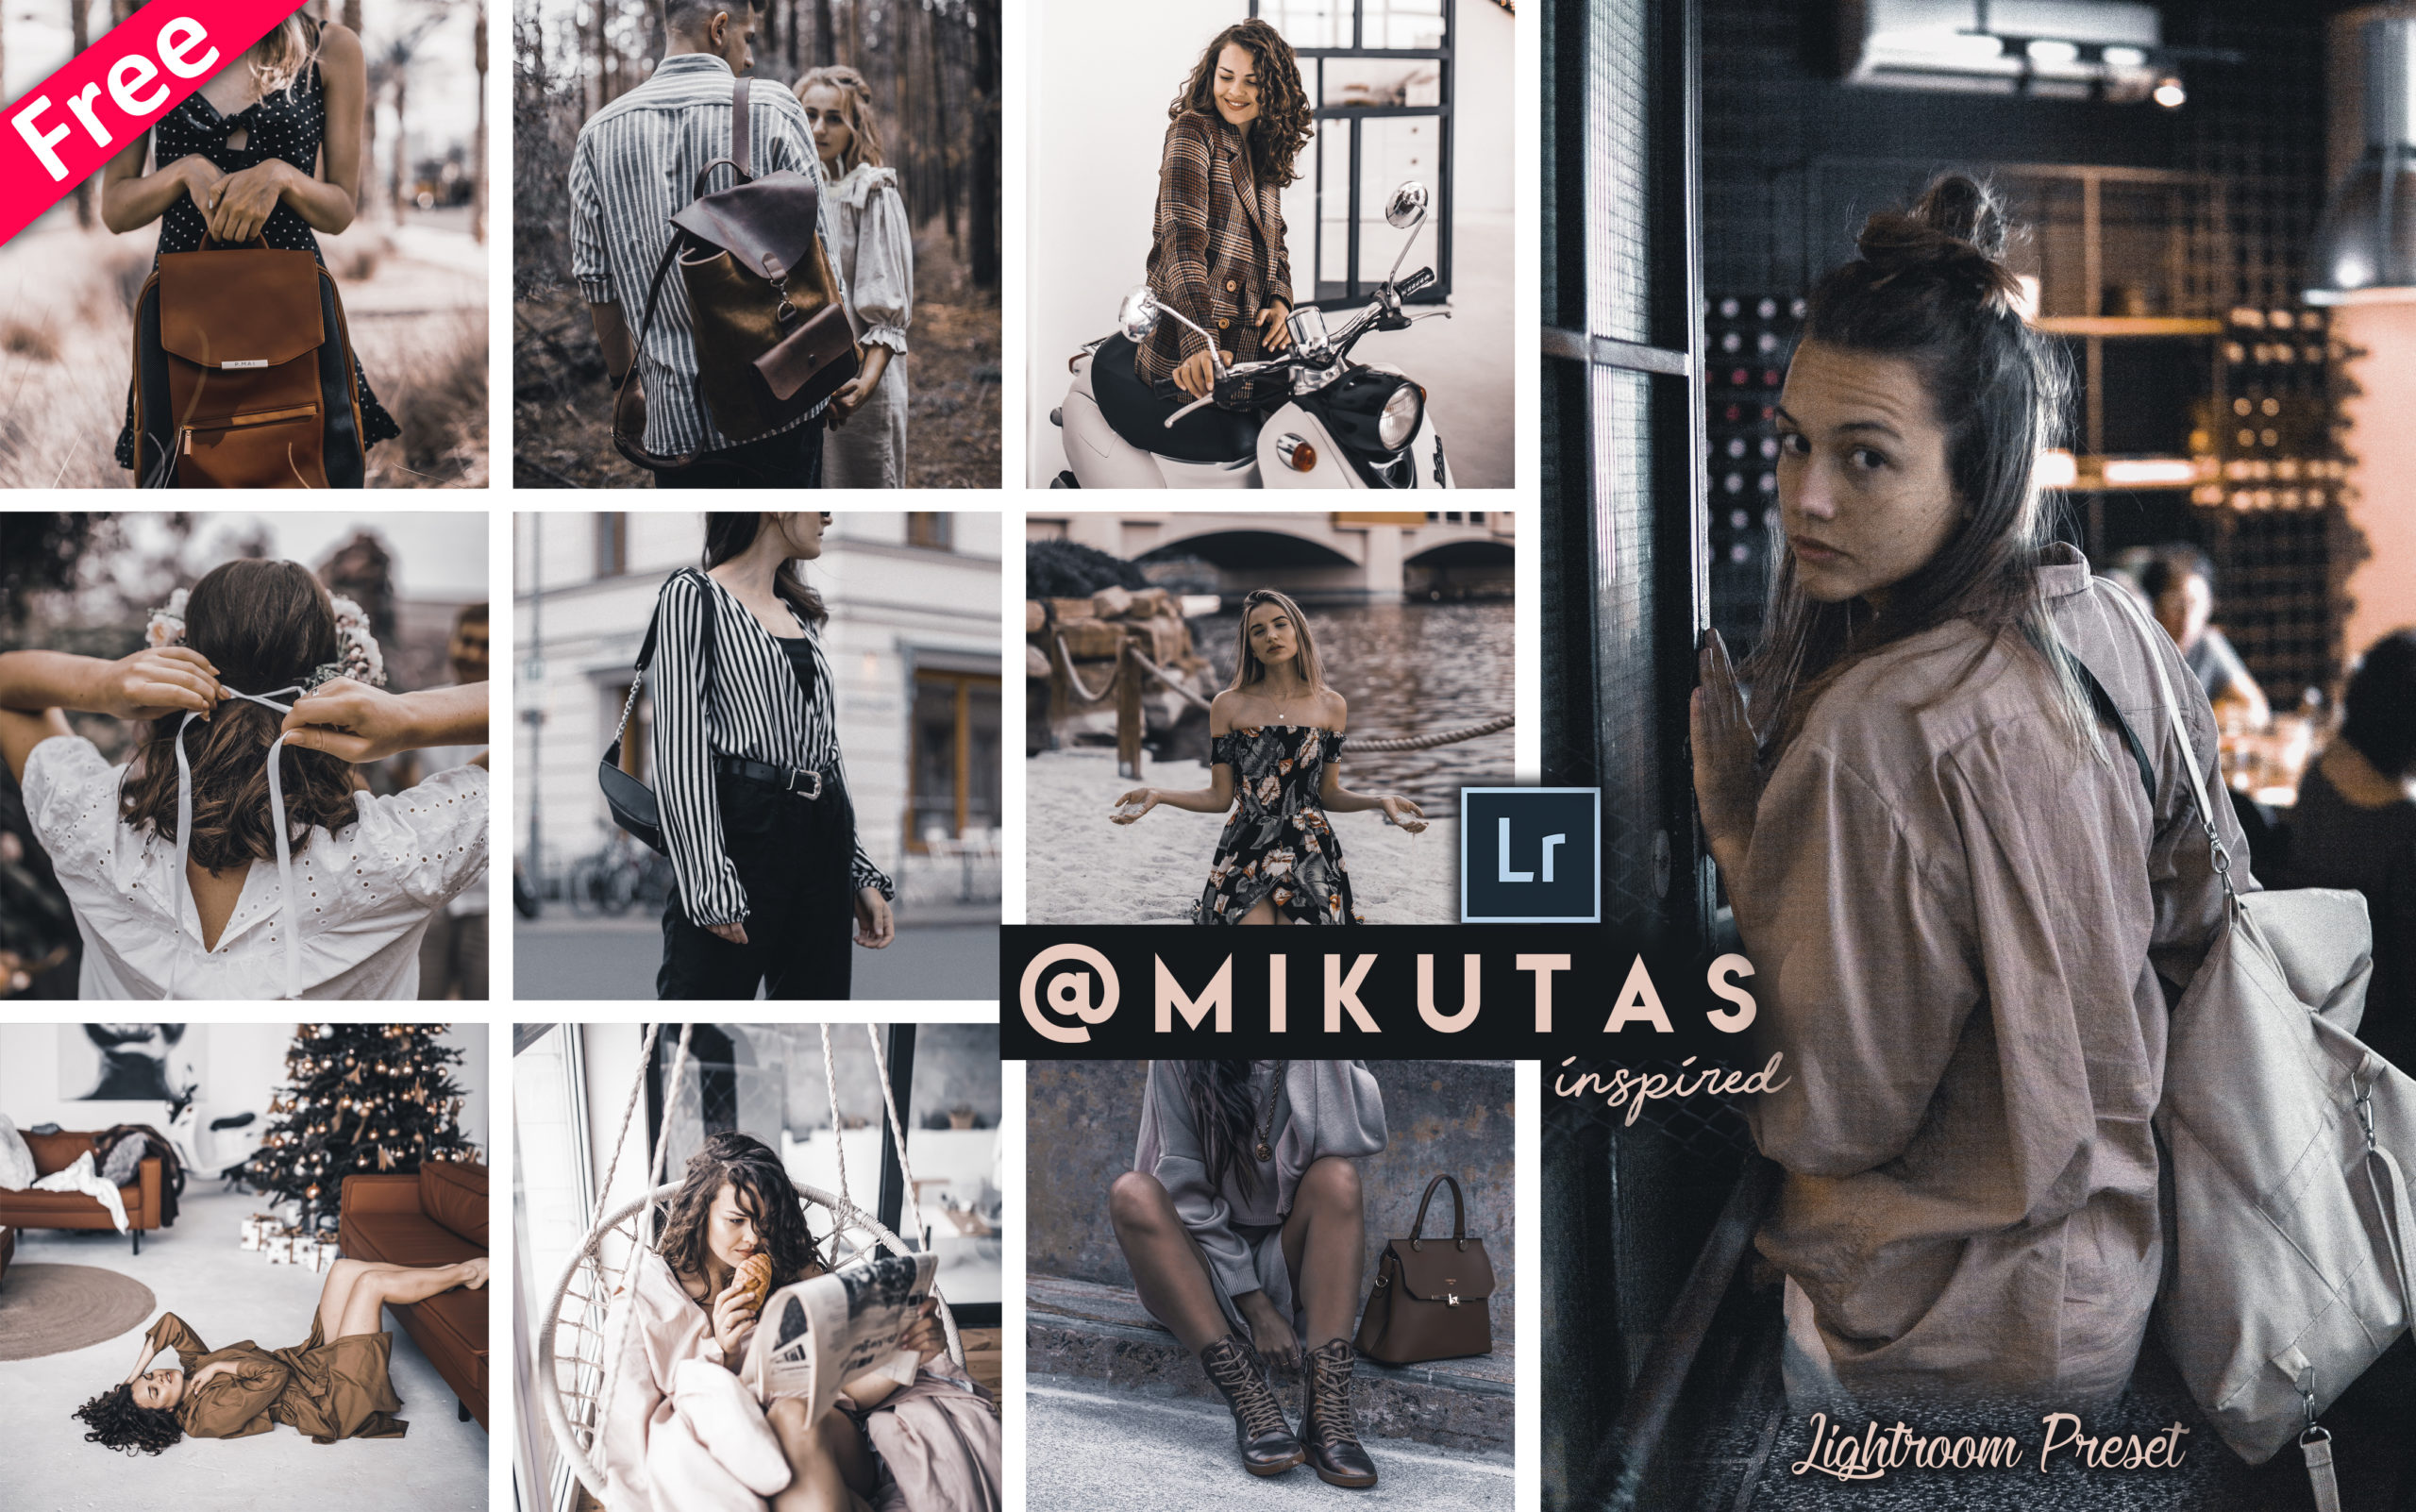 Download Mikutas Inspired Lightroom Presets for Free | How to Edit Photos Like Jacqueline Mikuta in Lightroom